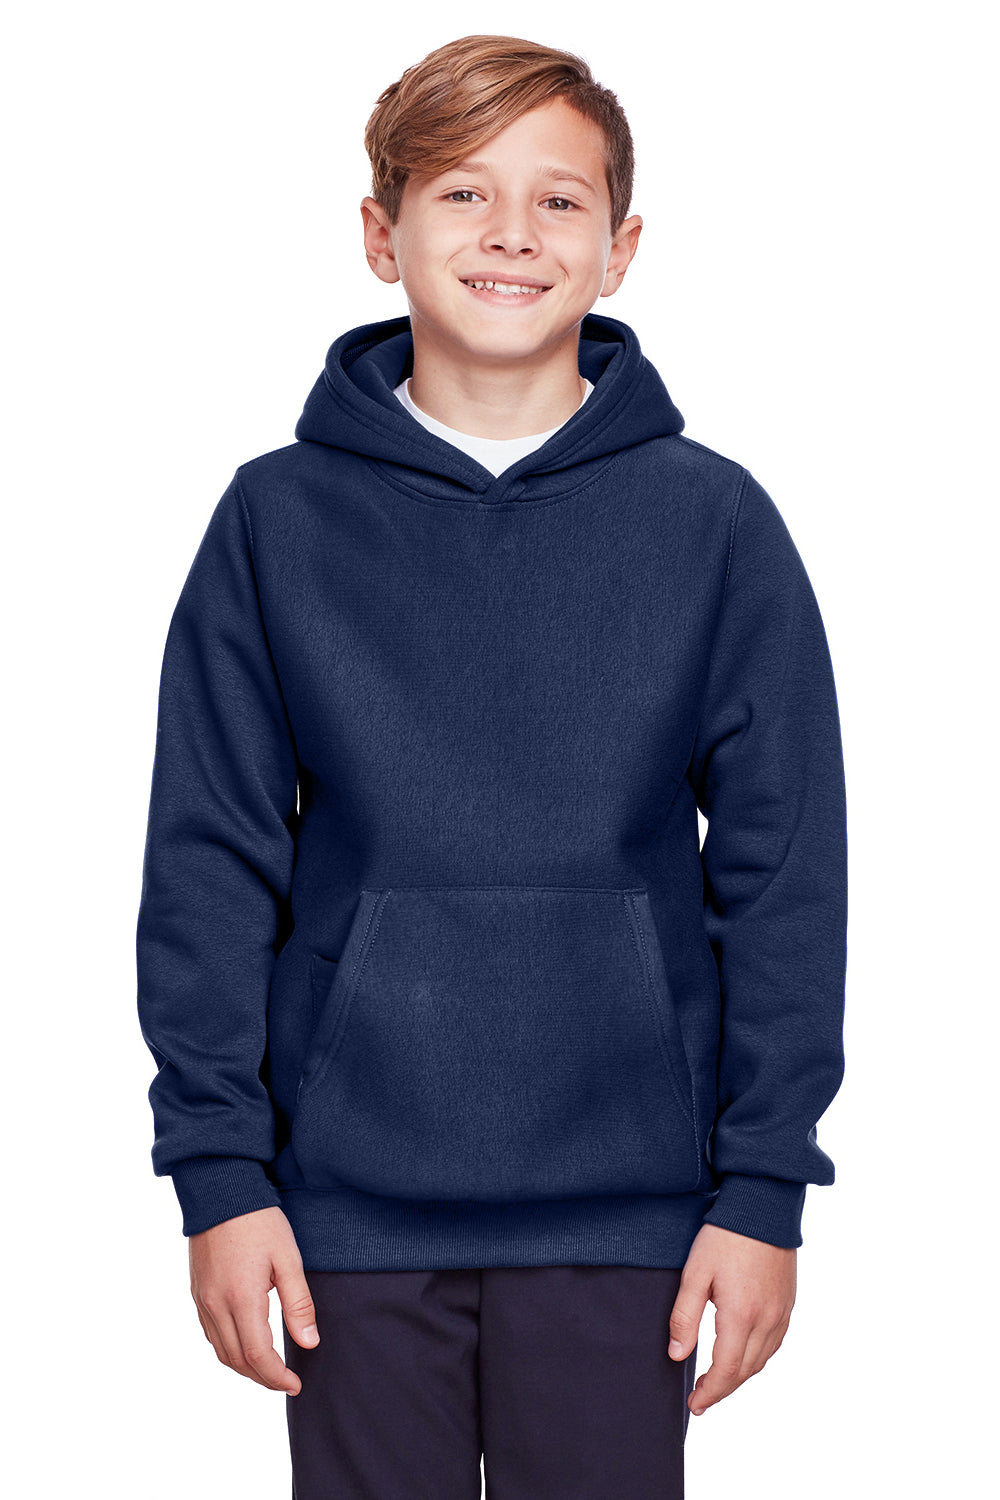 Team 365 TT96Y Youth Zone HydroSport Fleece Water Resistant Hooded Sweatshirt Hoodie Navy Blue Front